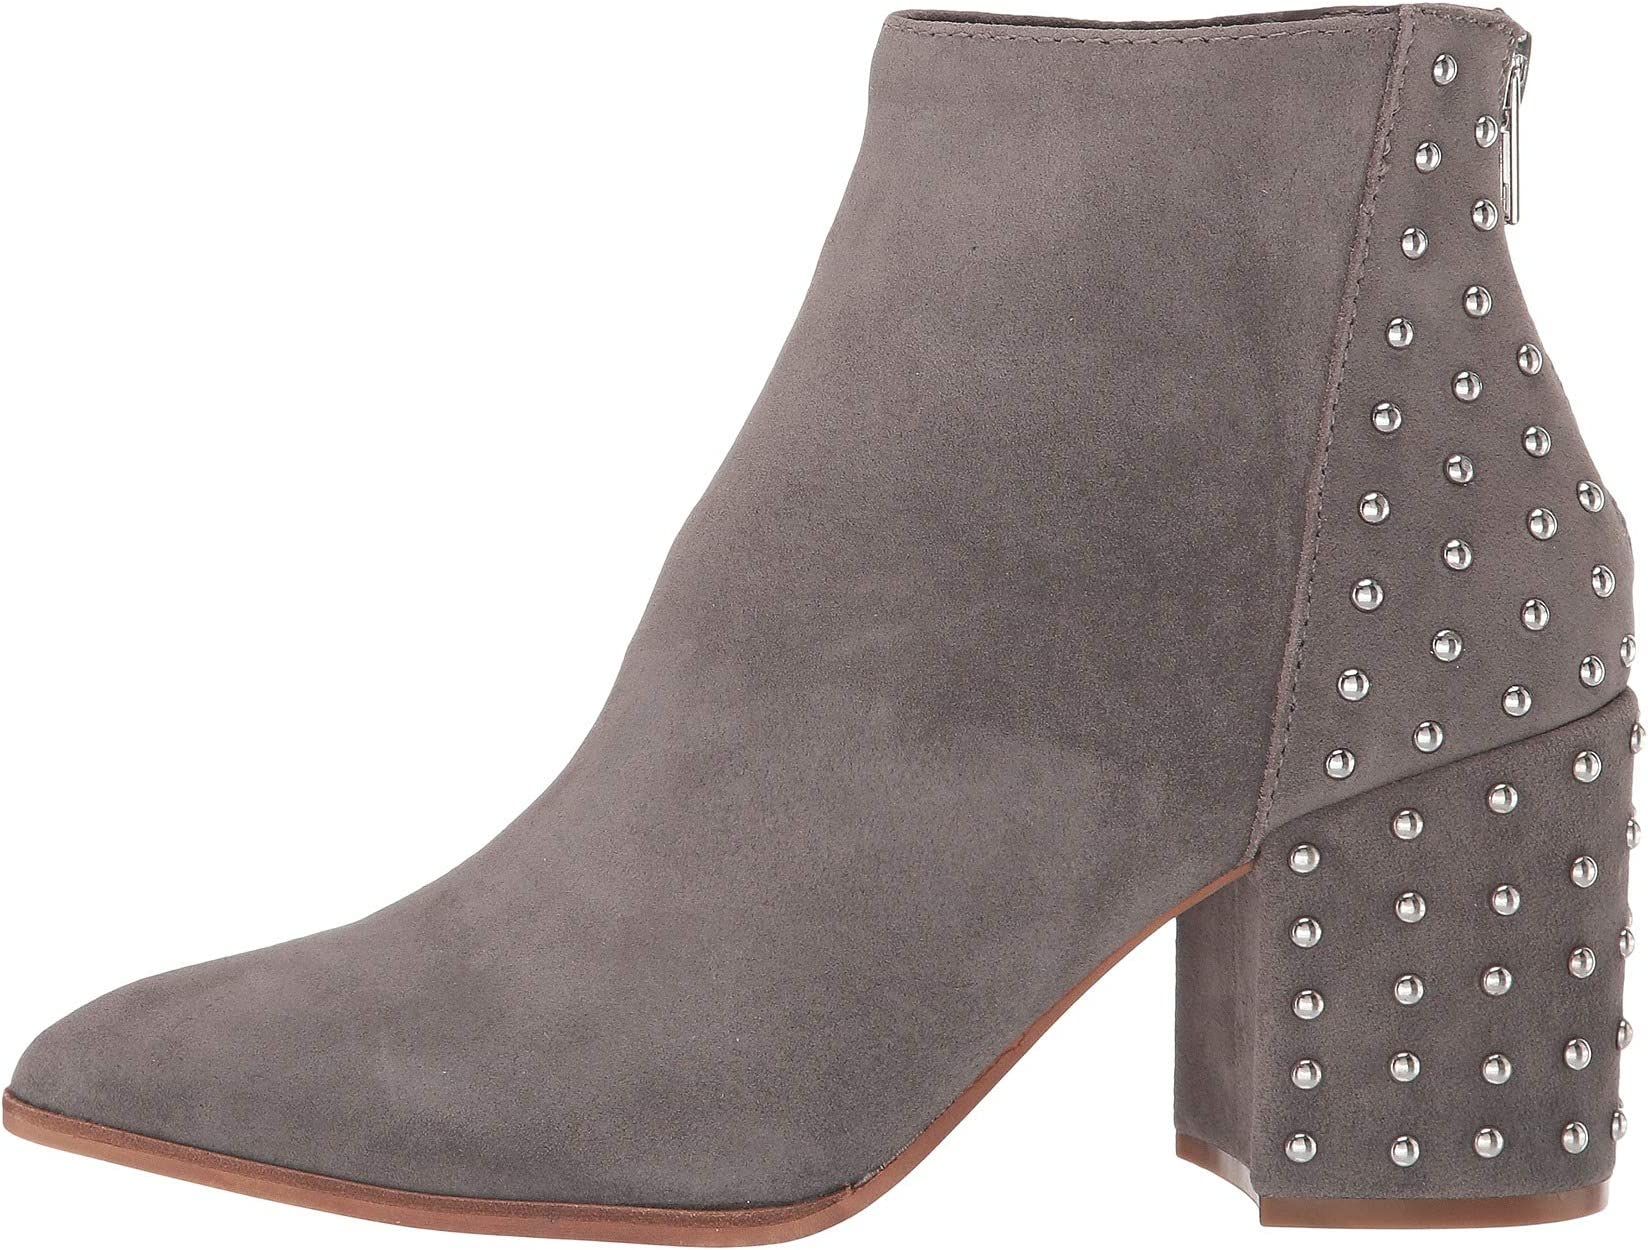 Steve Madden Jillian-S Bootie | Women's shoes | 2020 Newest